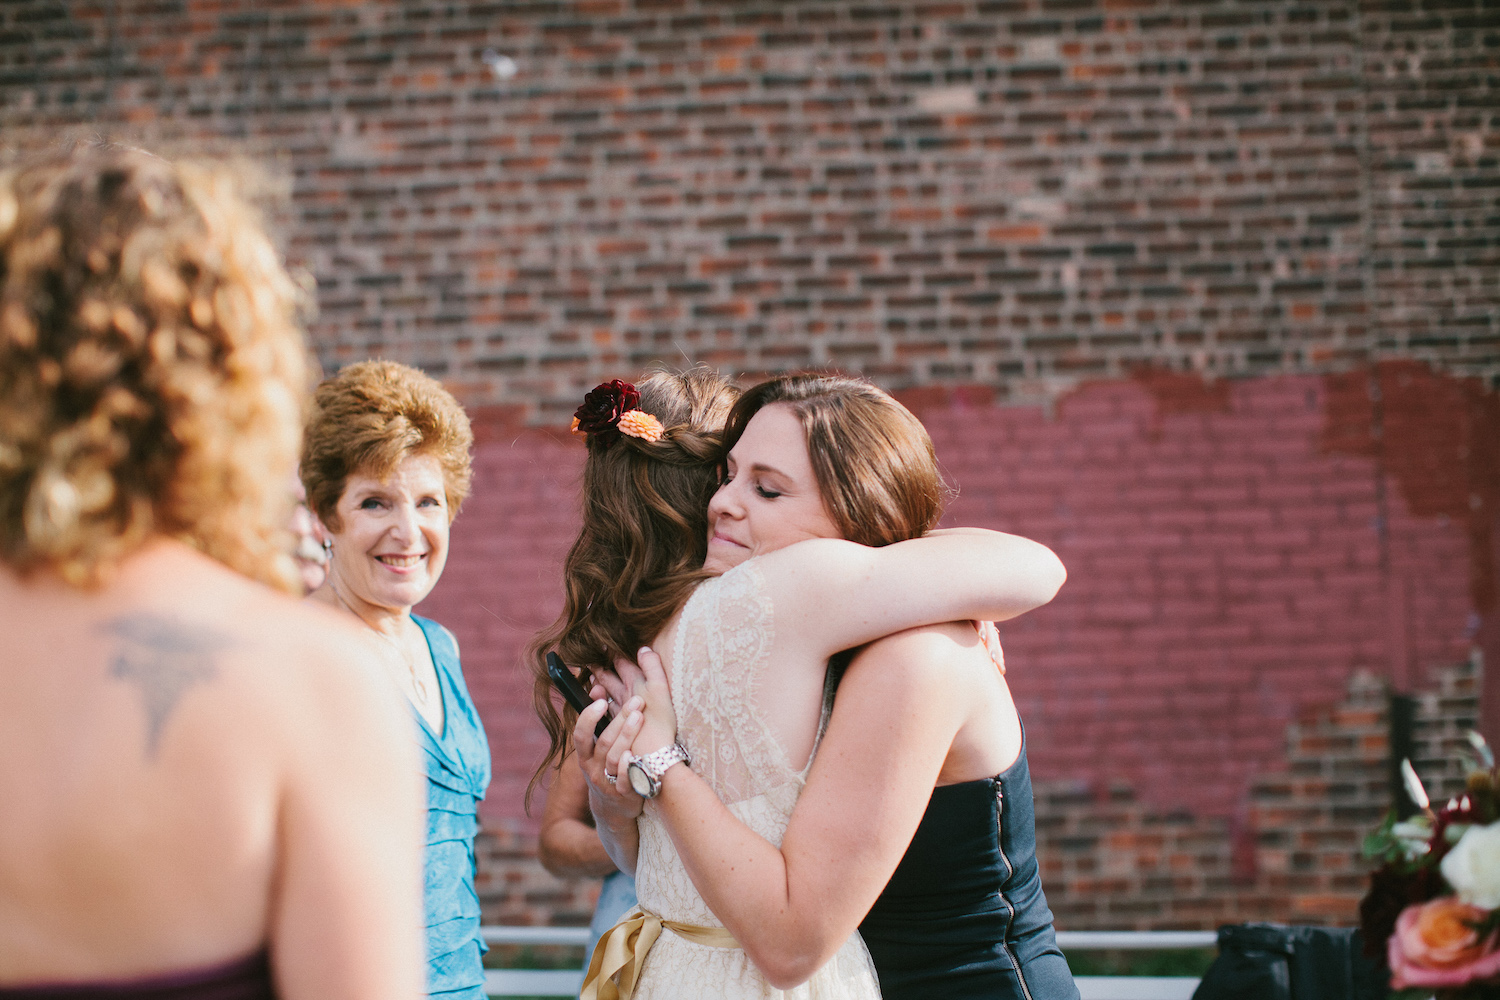 Full Aperture Floral & Corey Torpie Photography  - Brooklyn Wedding - 31.jpeg